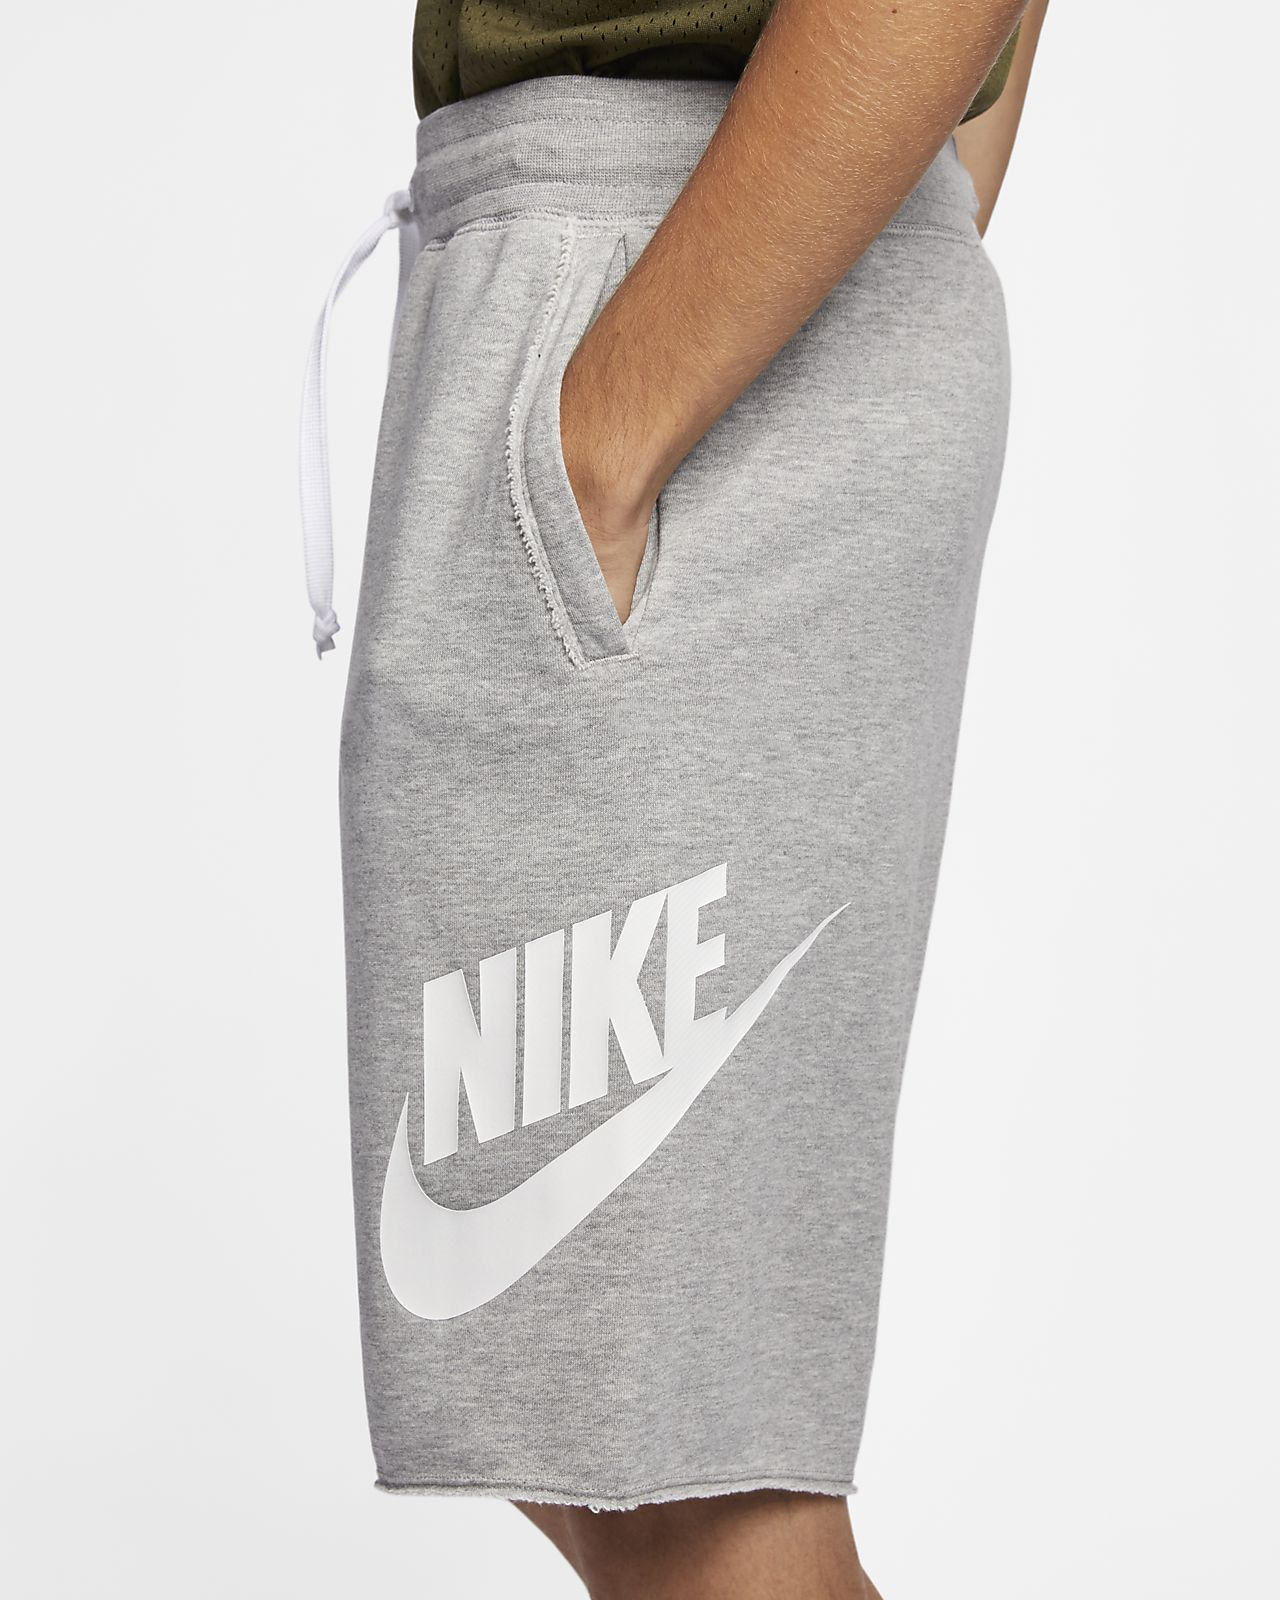 Nike new collection